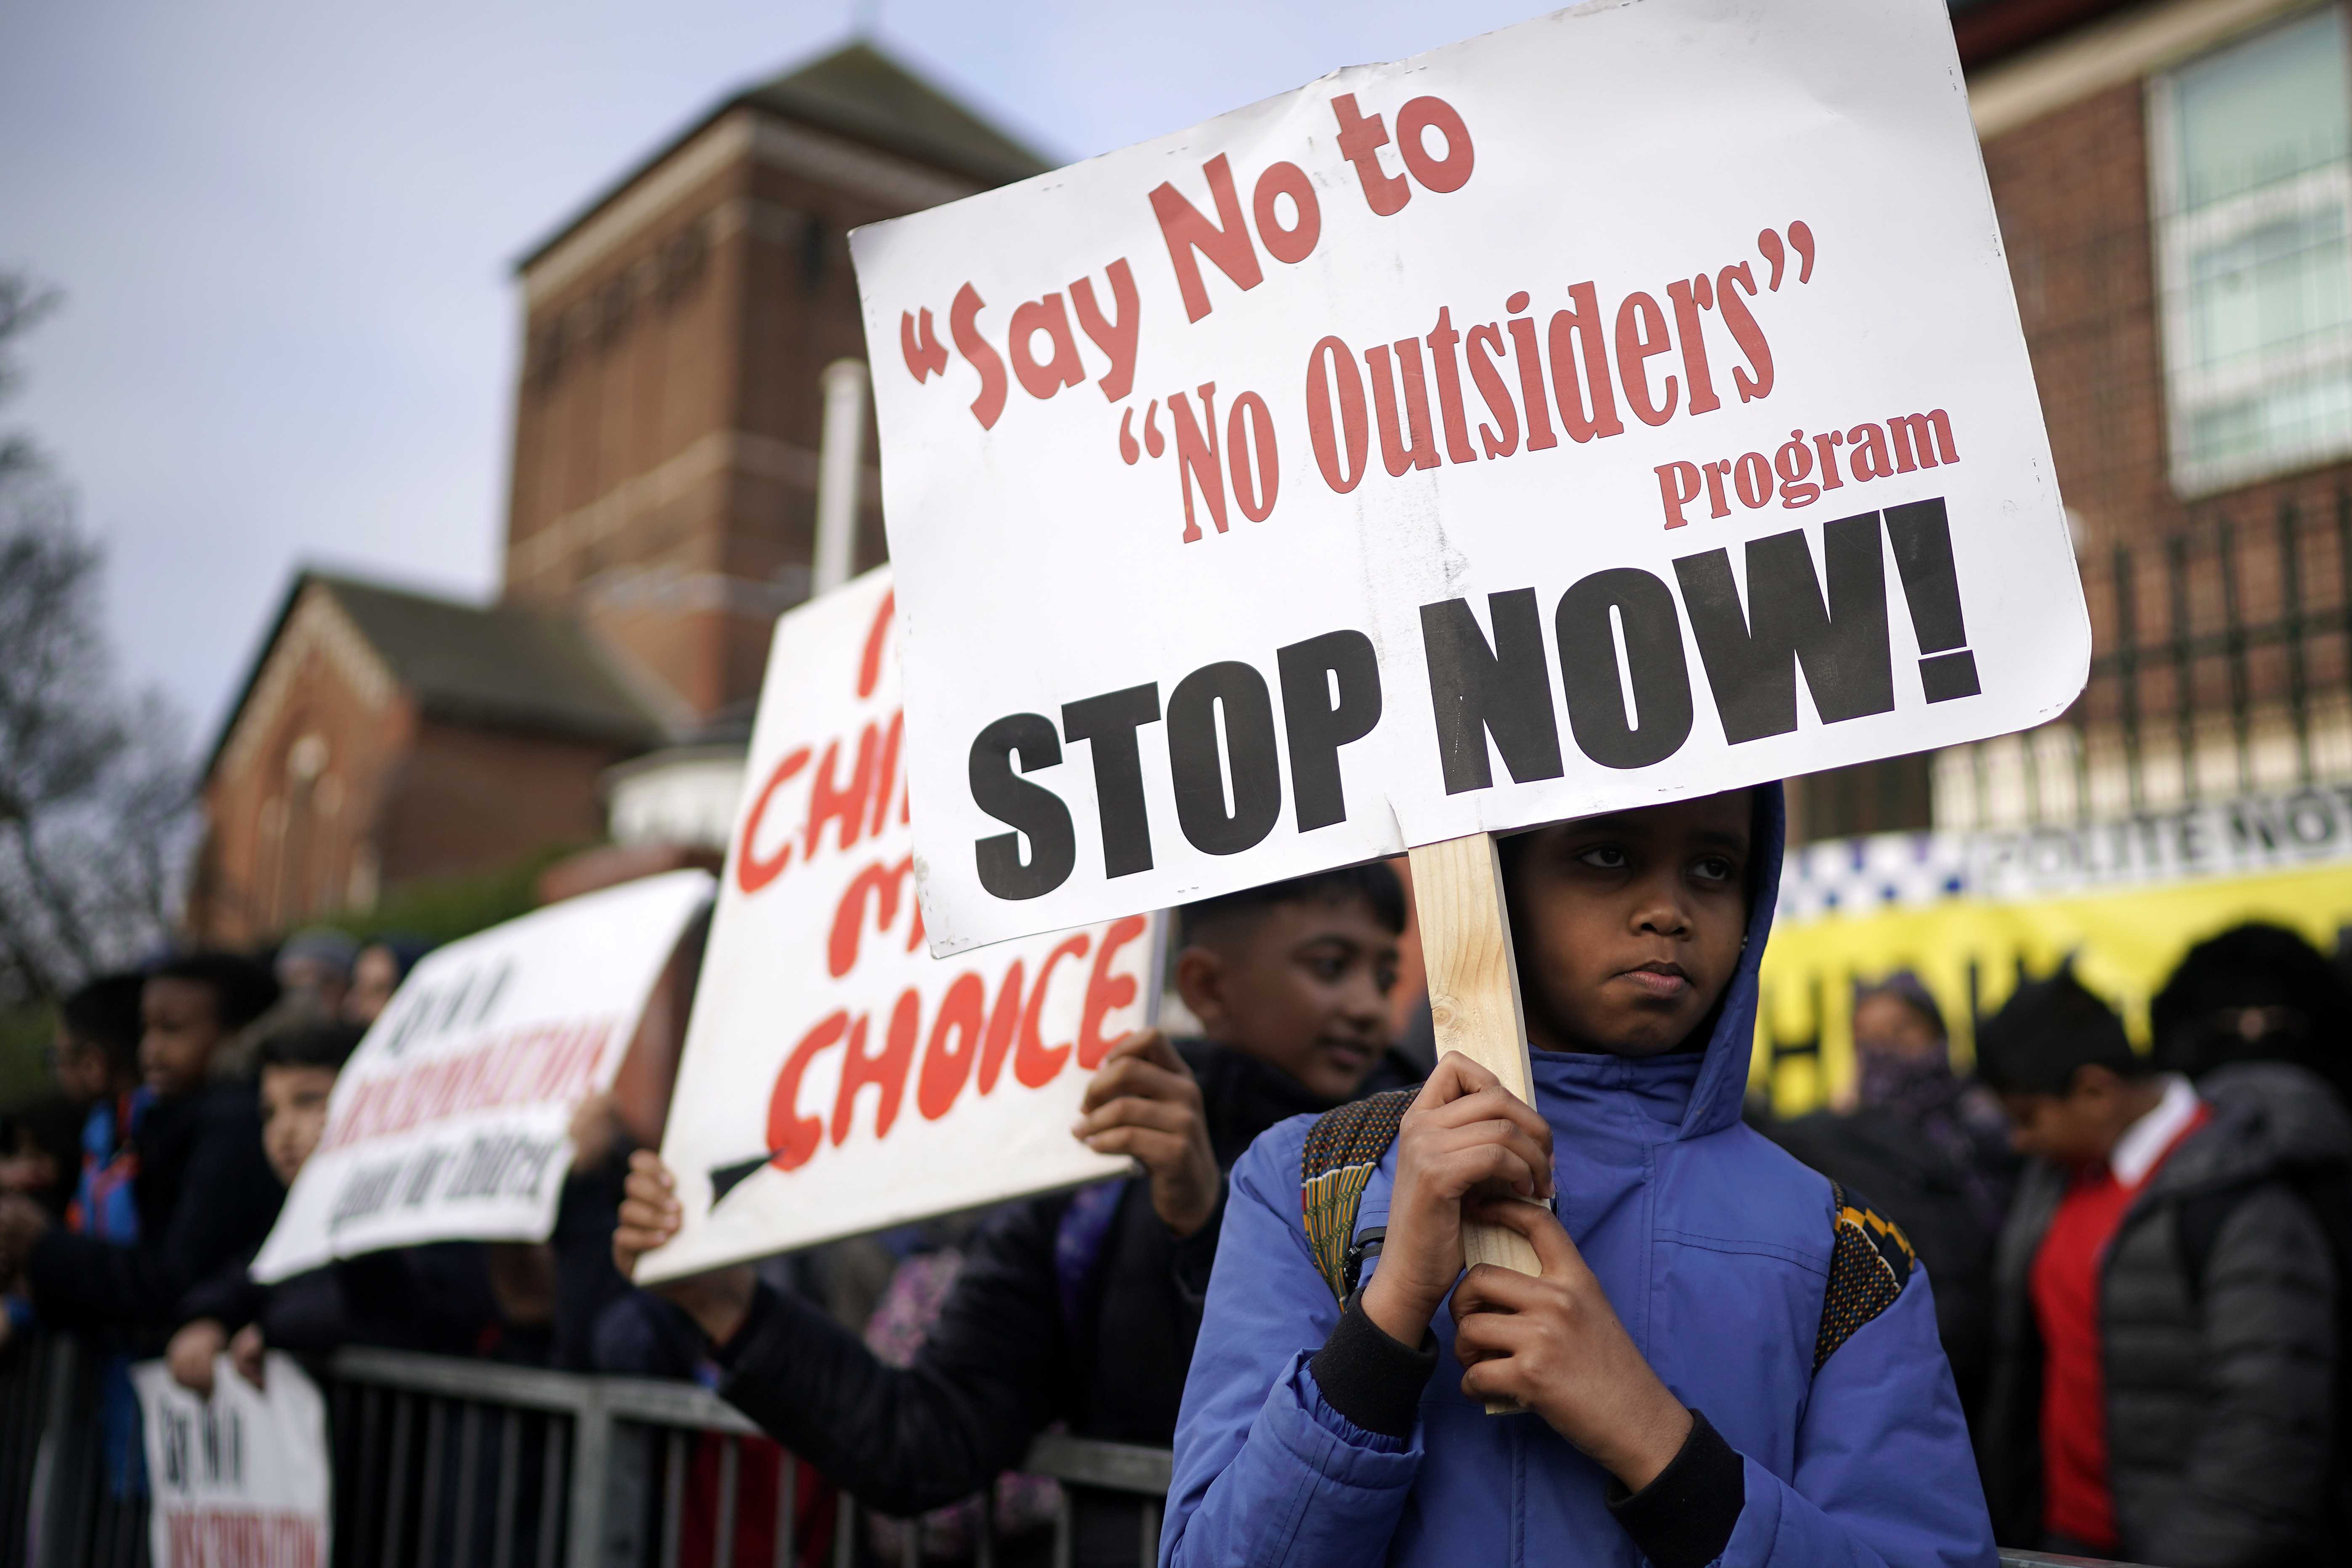 Protests outside a school in Birmingham (Pic credit: Christopher Furlong/Getty Images)